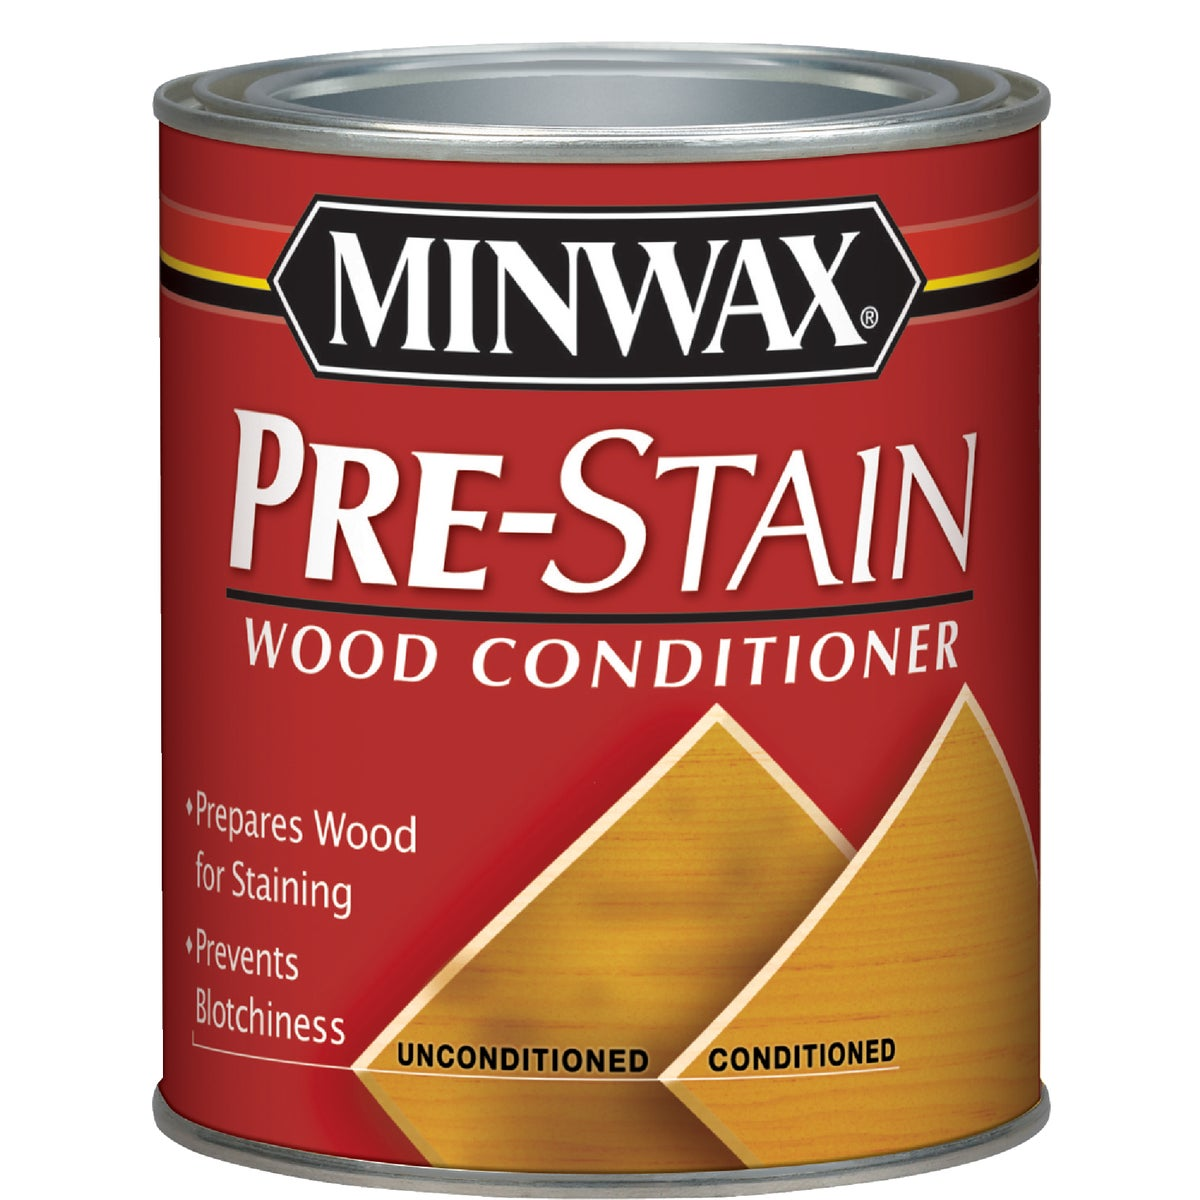 PRE-STN WOOD CONDITIONER